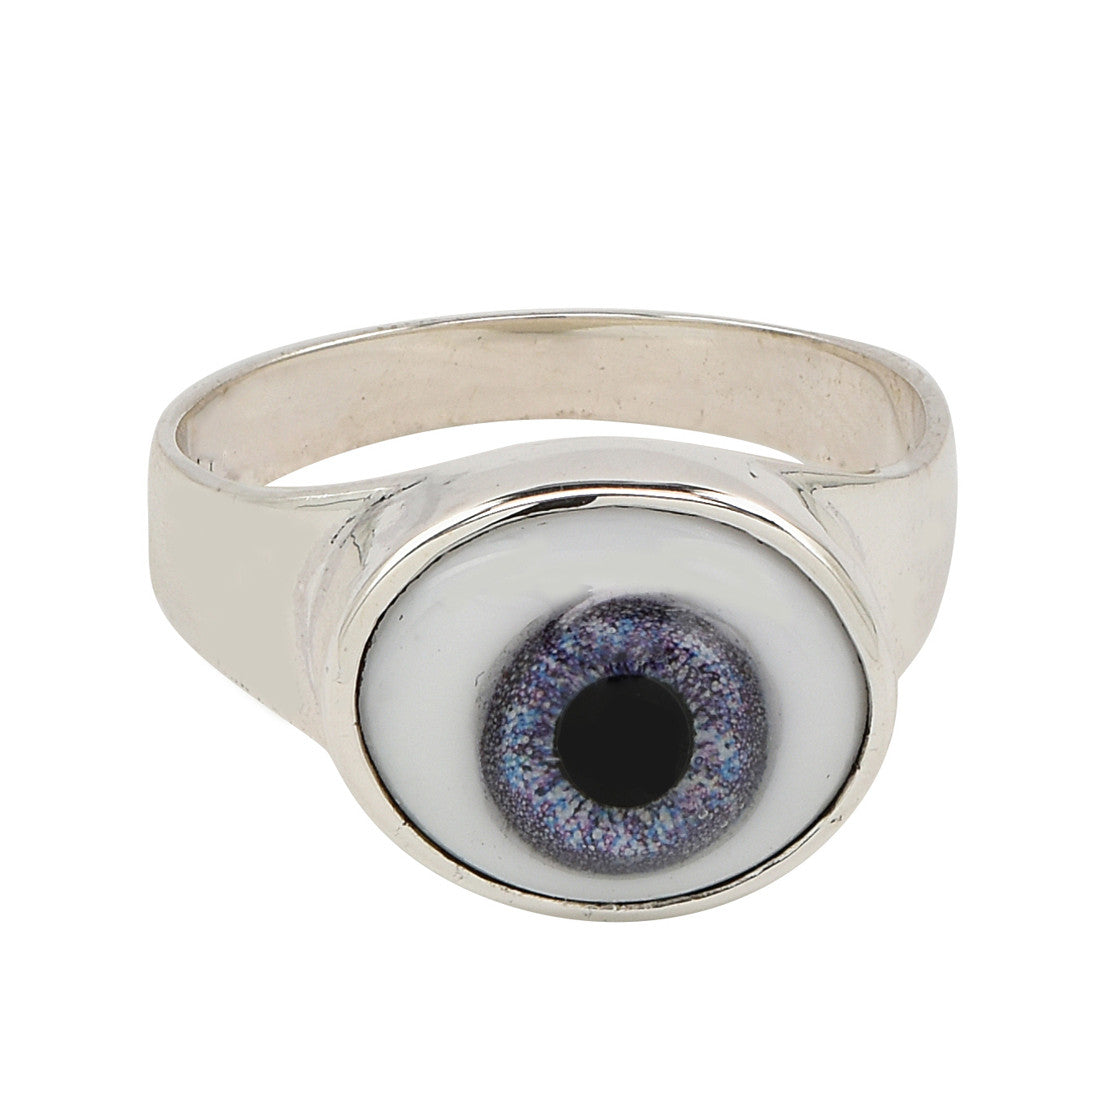 silver eye against evil ring (violet) - René Habie